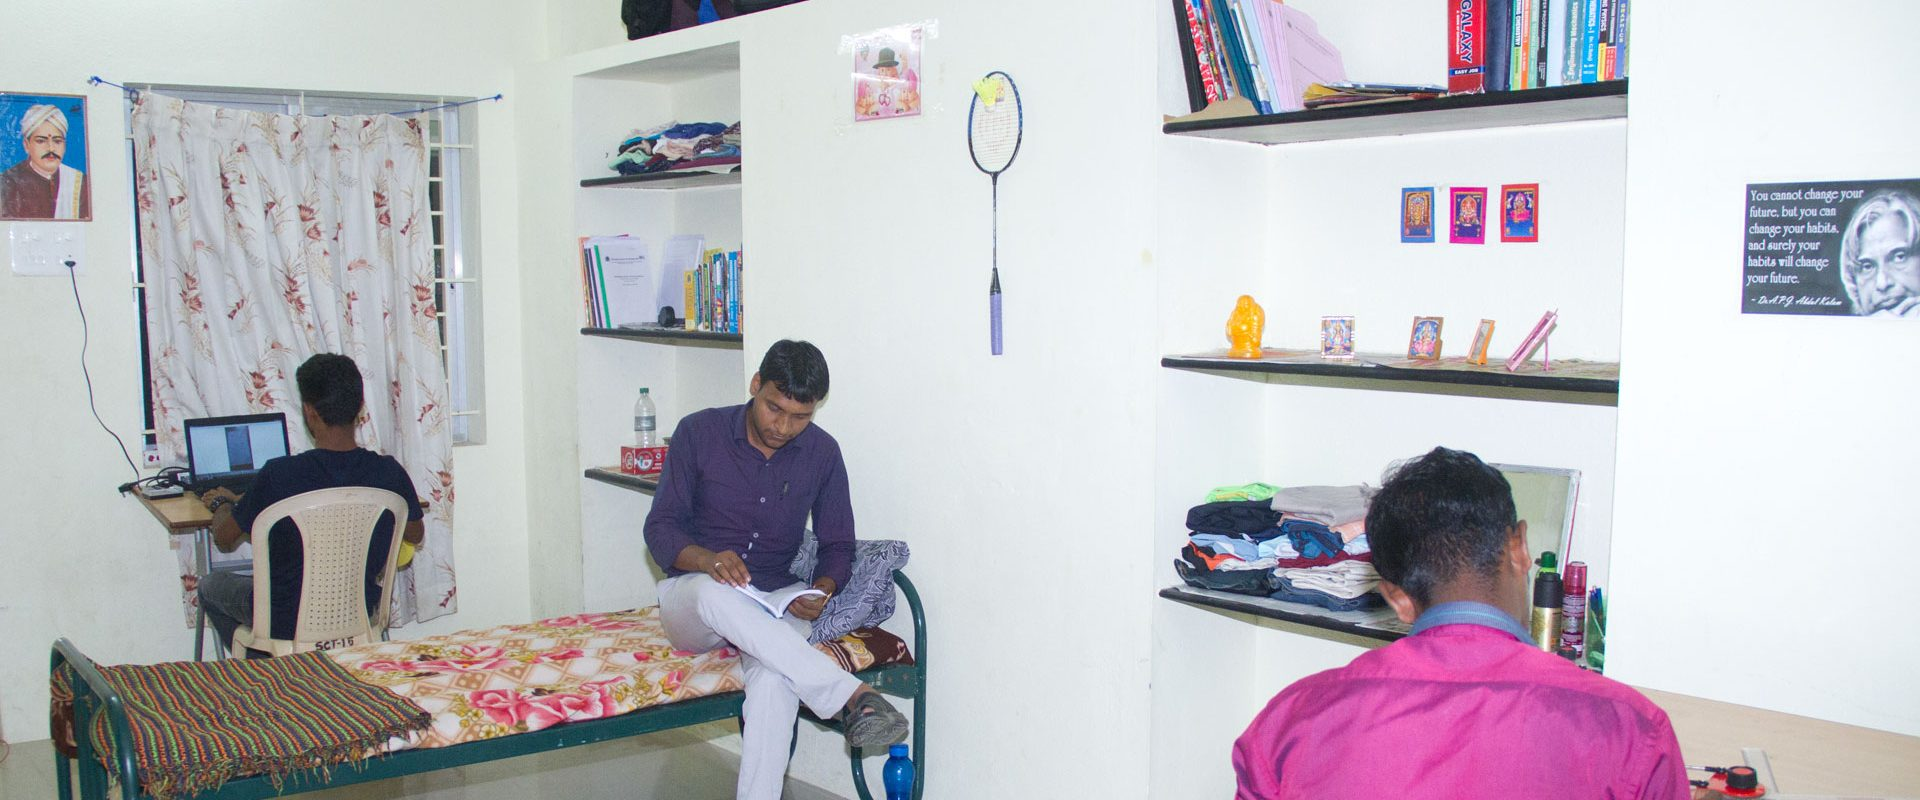 Boys Hostel - Interior